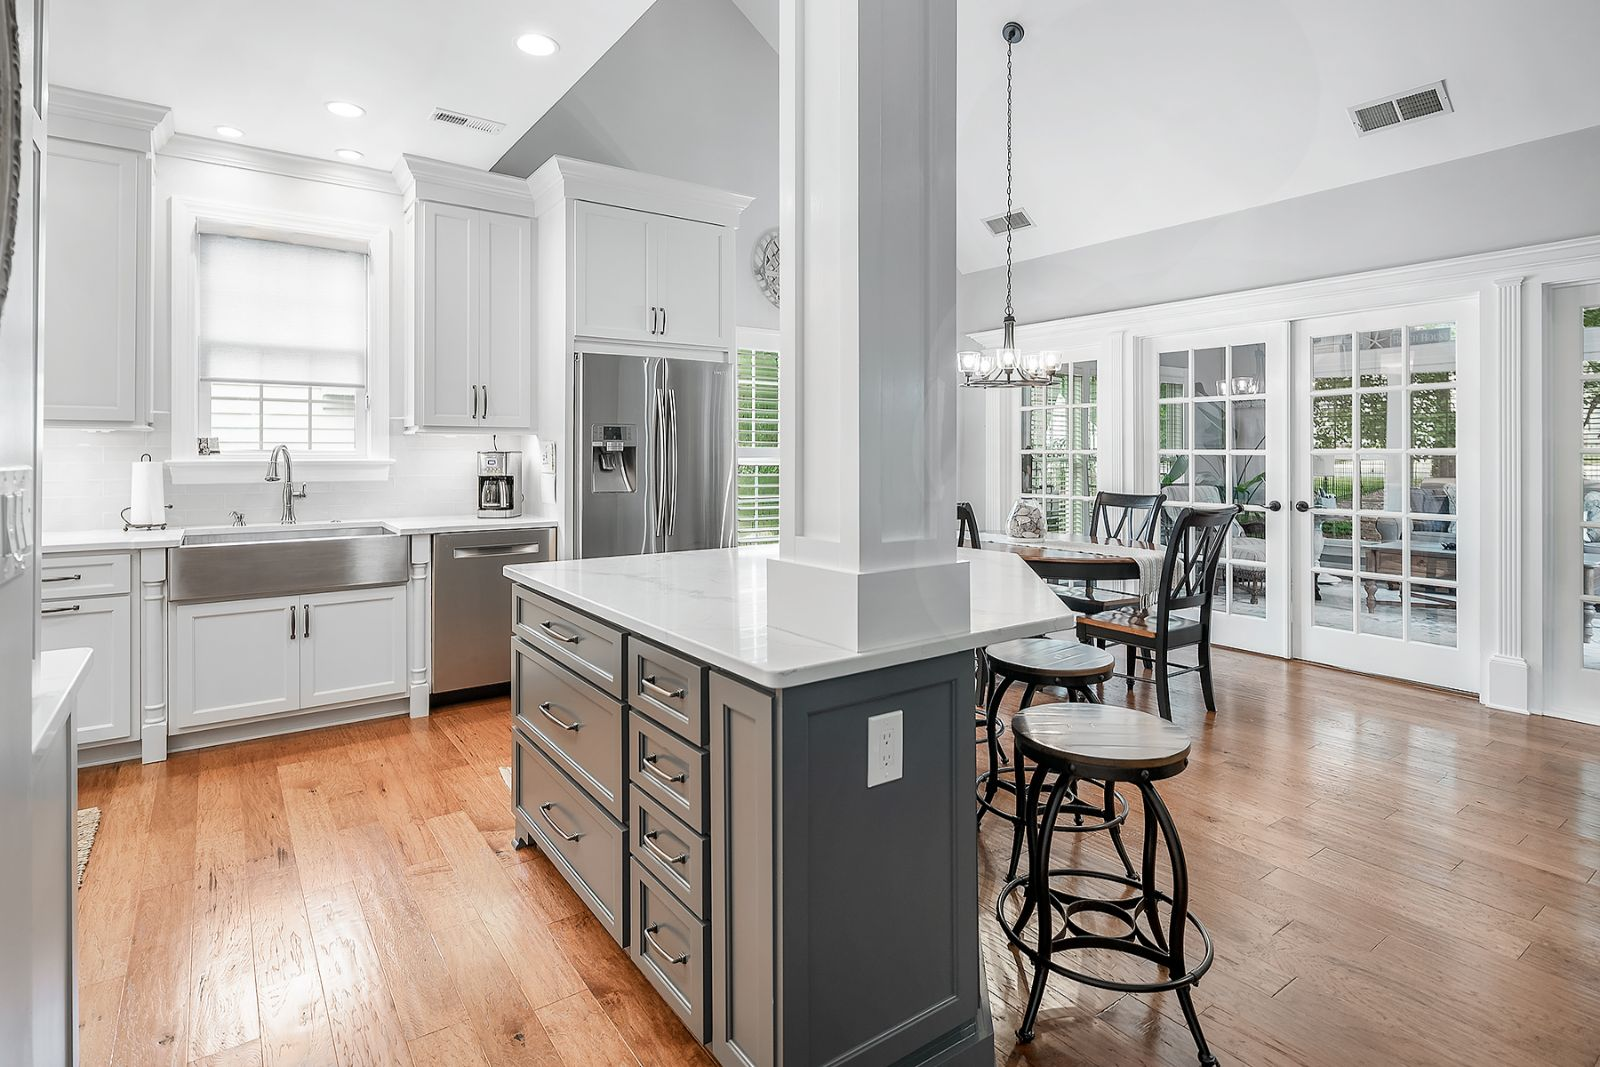 Mitchell Glen: Living Space Remodel